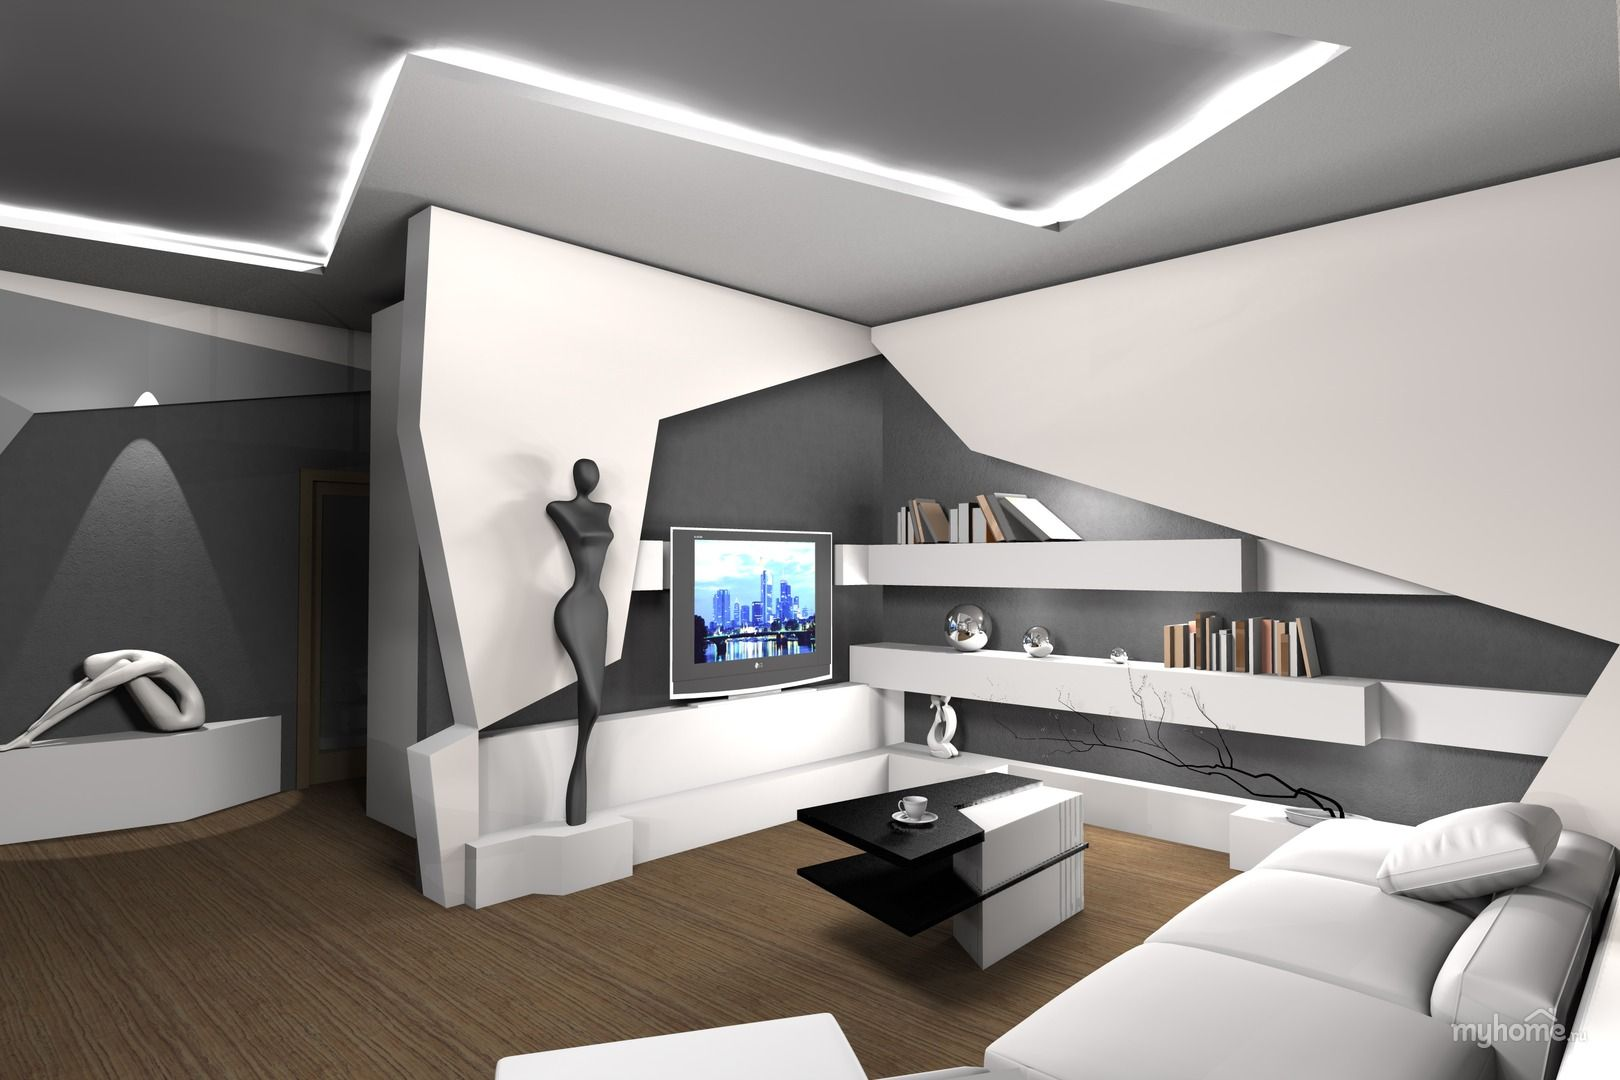 Futurism Interior Style: Overview and Examples